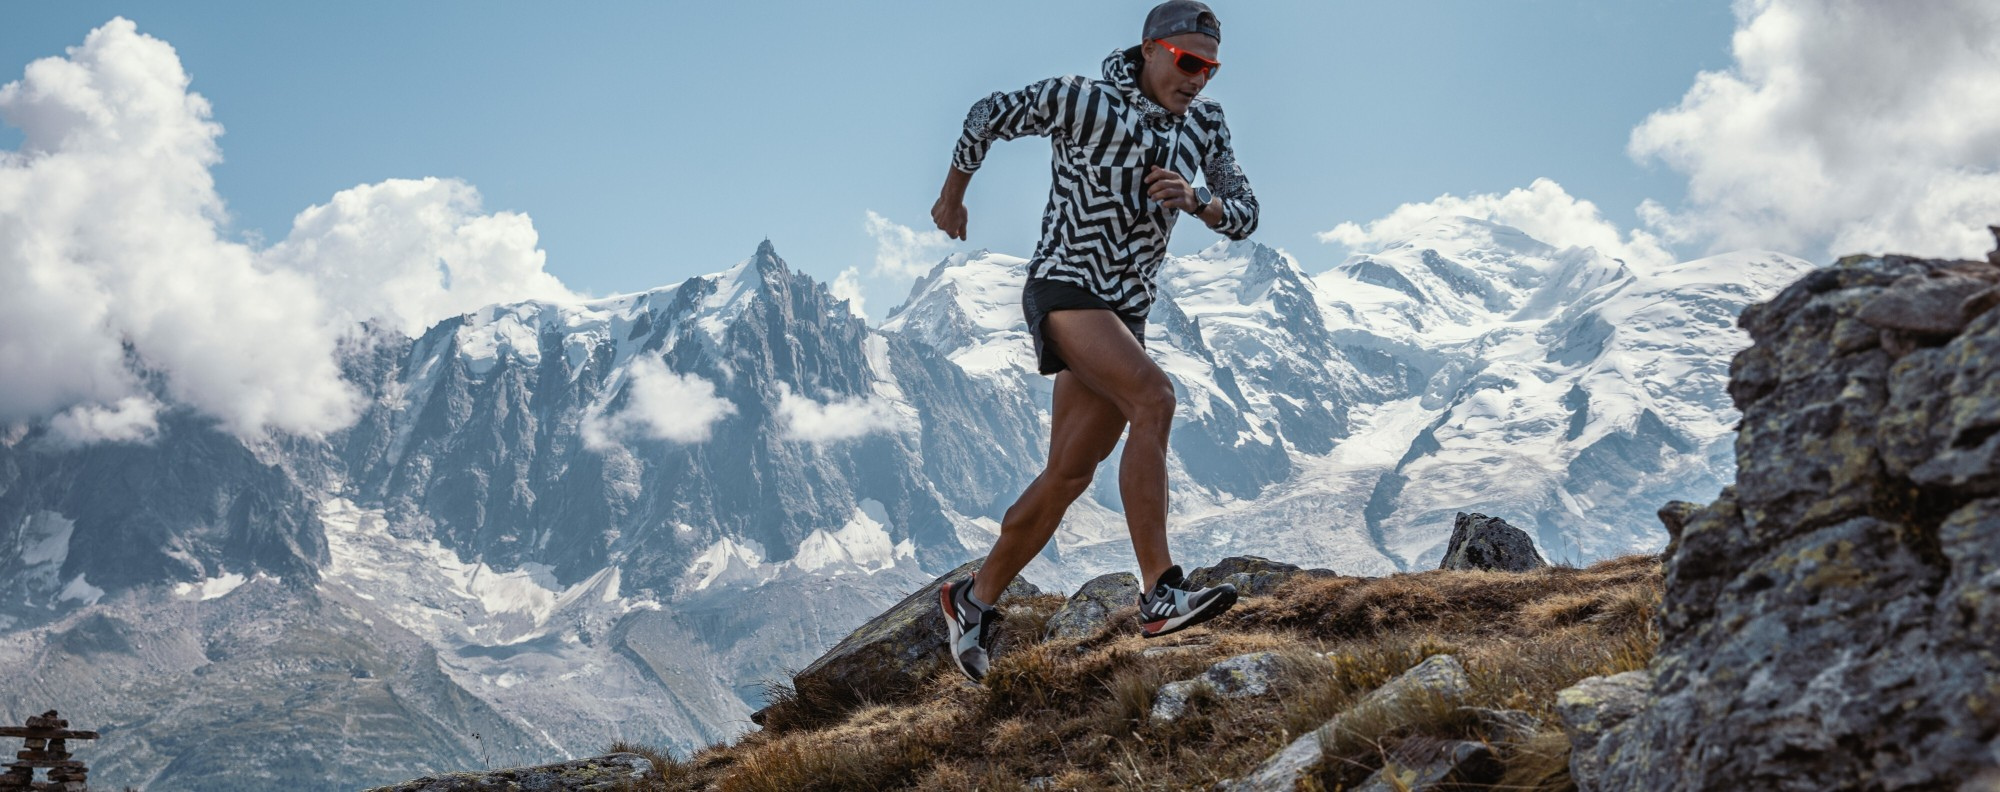 Dmitry Mityaev, one of Russia's top trail runners, is in love with the lifestyle of a professional runner.